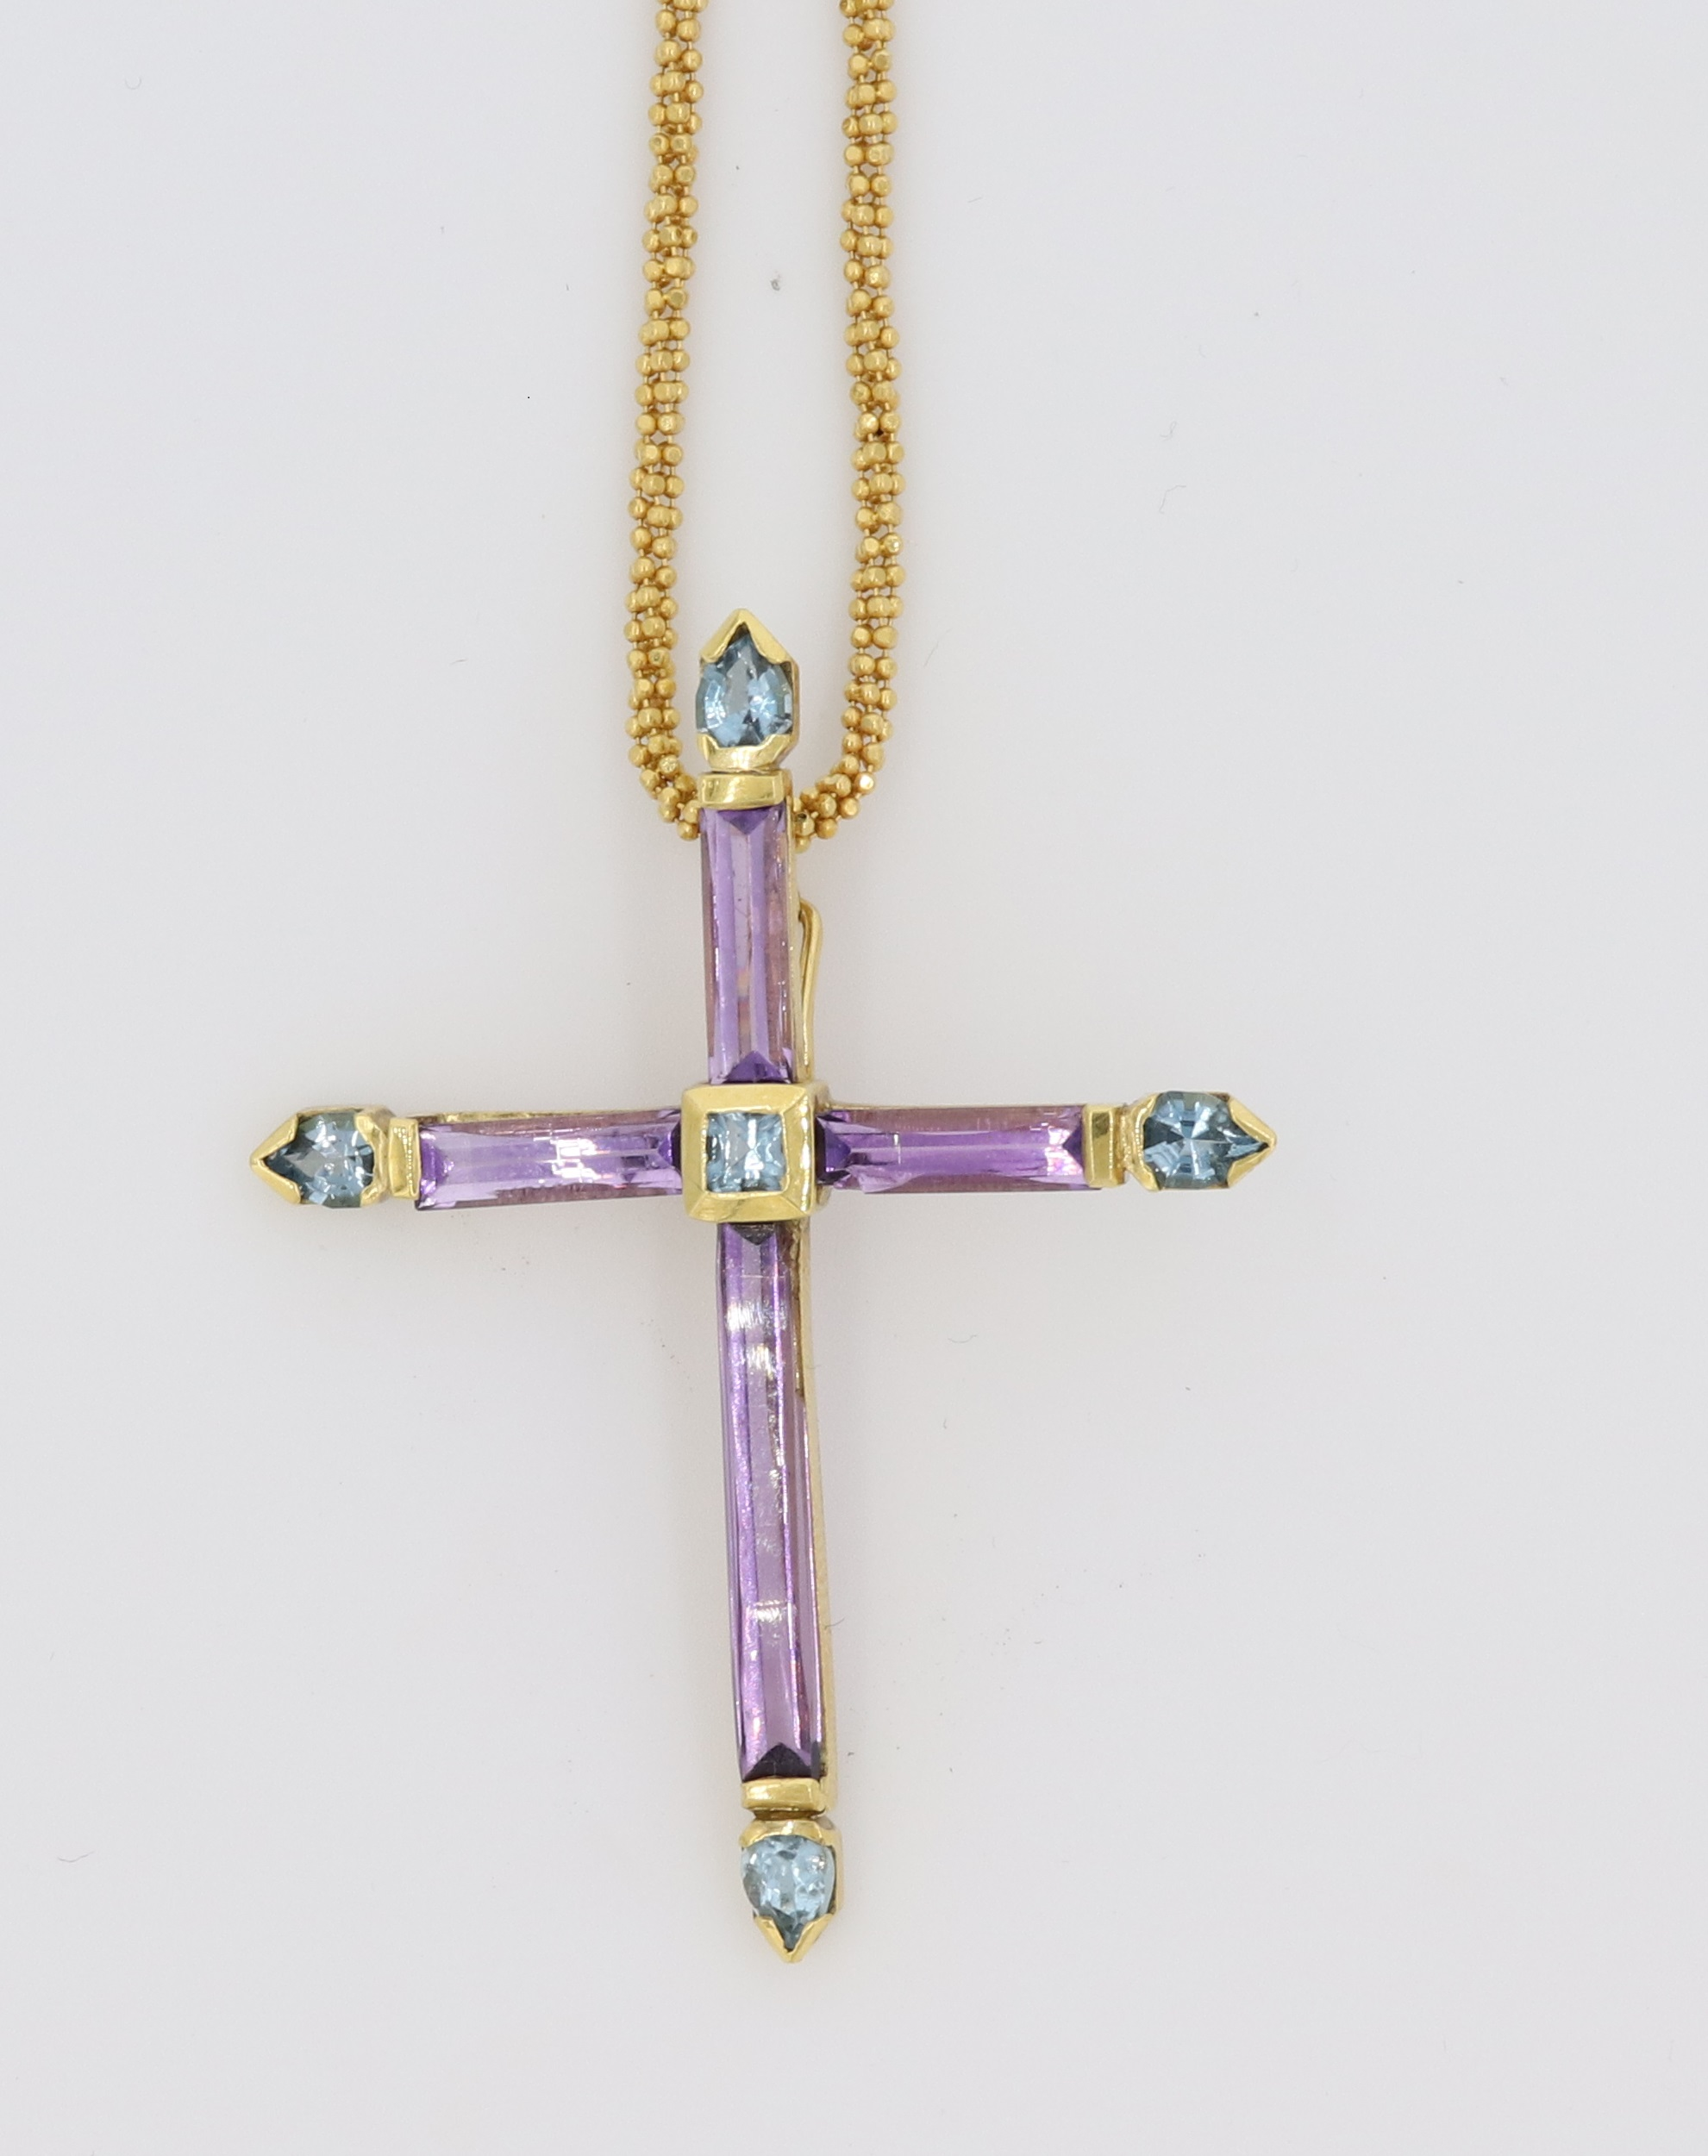 Amethyst And Aqua Marine Cross Pendant